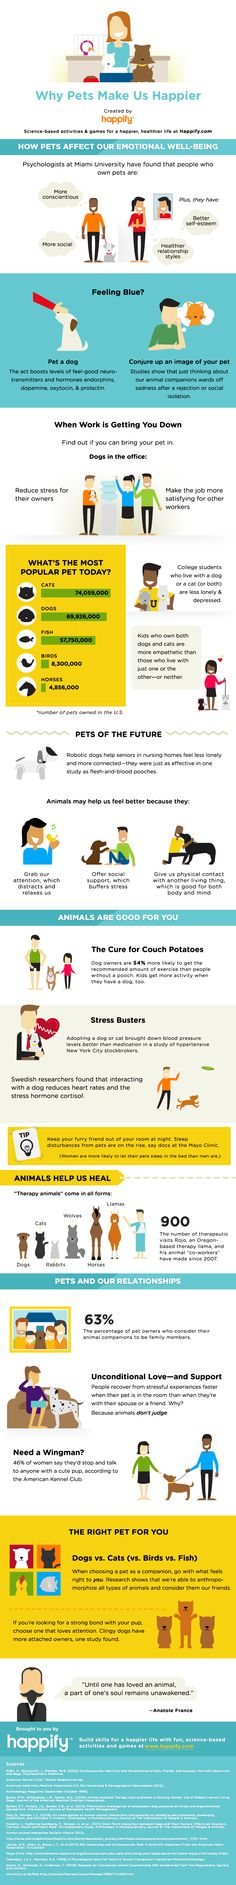 It's science. Pets make us happier. Dogs, Cats, Lizards, Ferrets, Bunnies—they all count! Grab your four-legged friend for reduced blood pressure, stress and heart rate.